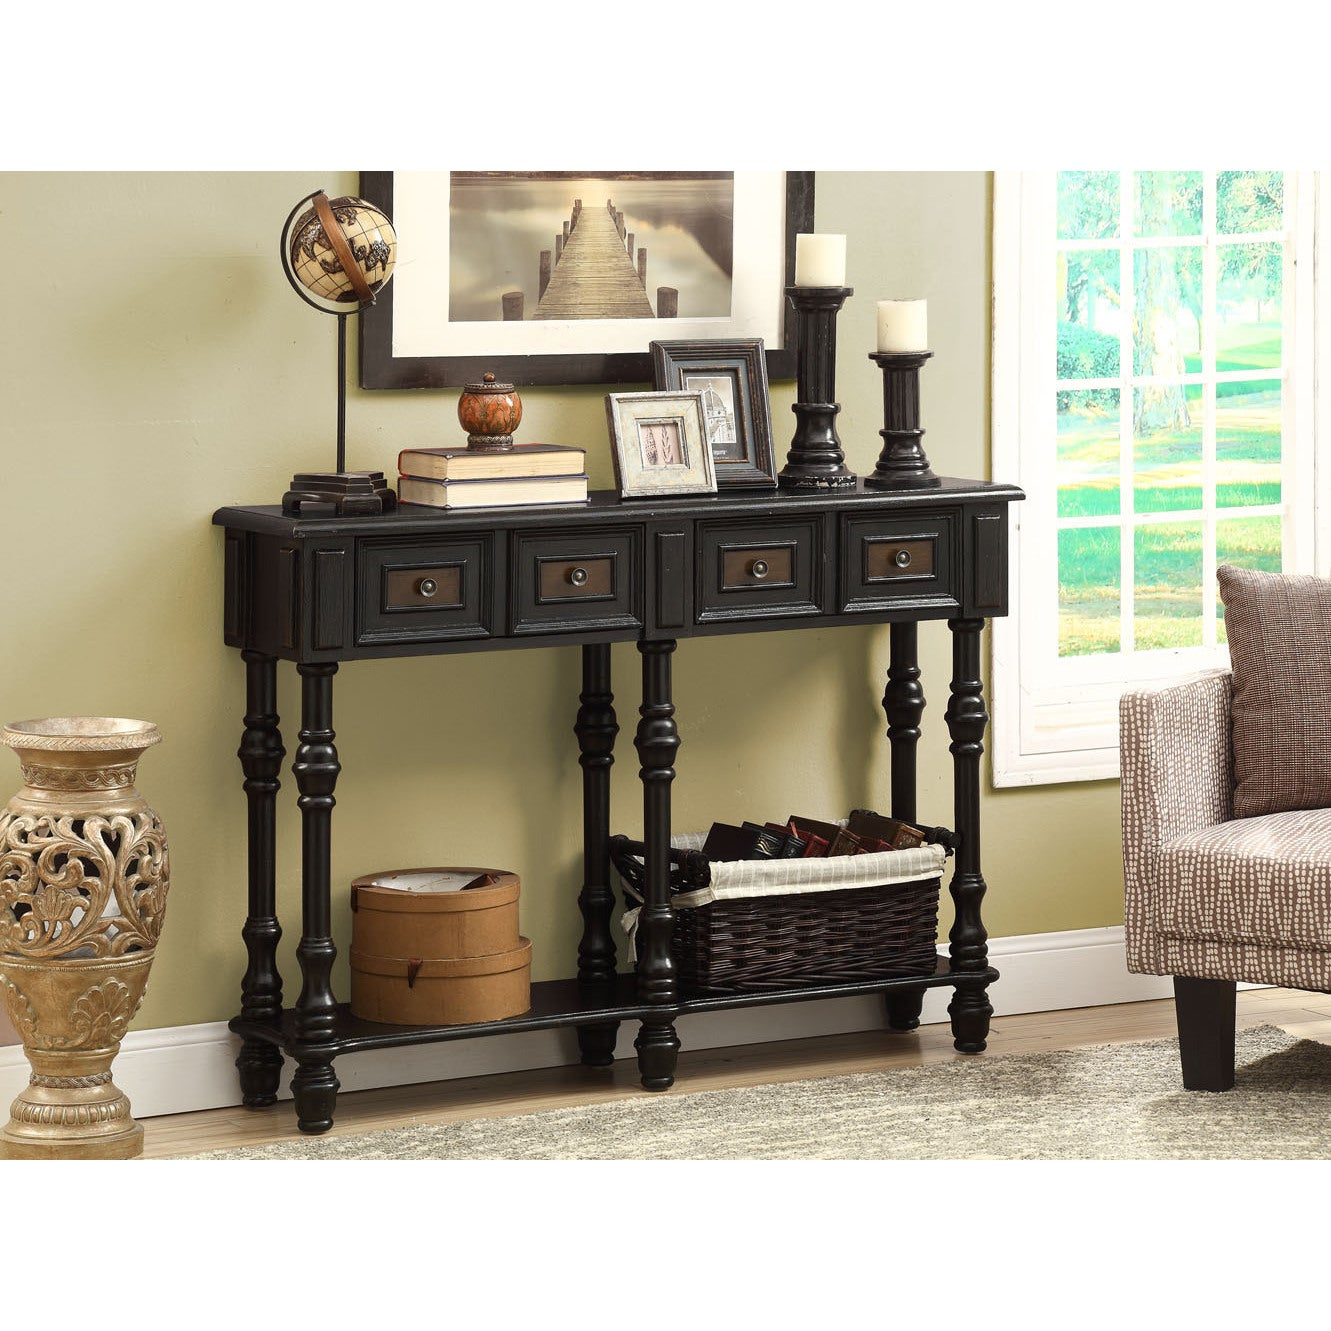 Traditional antique black veneer 48 inch console table for Sofa table 48 inches